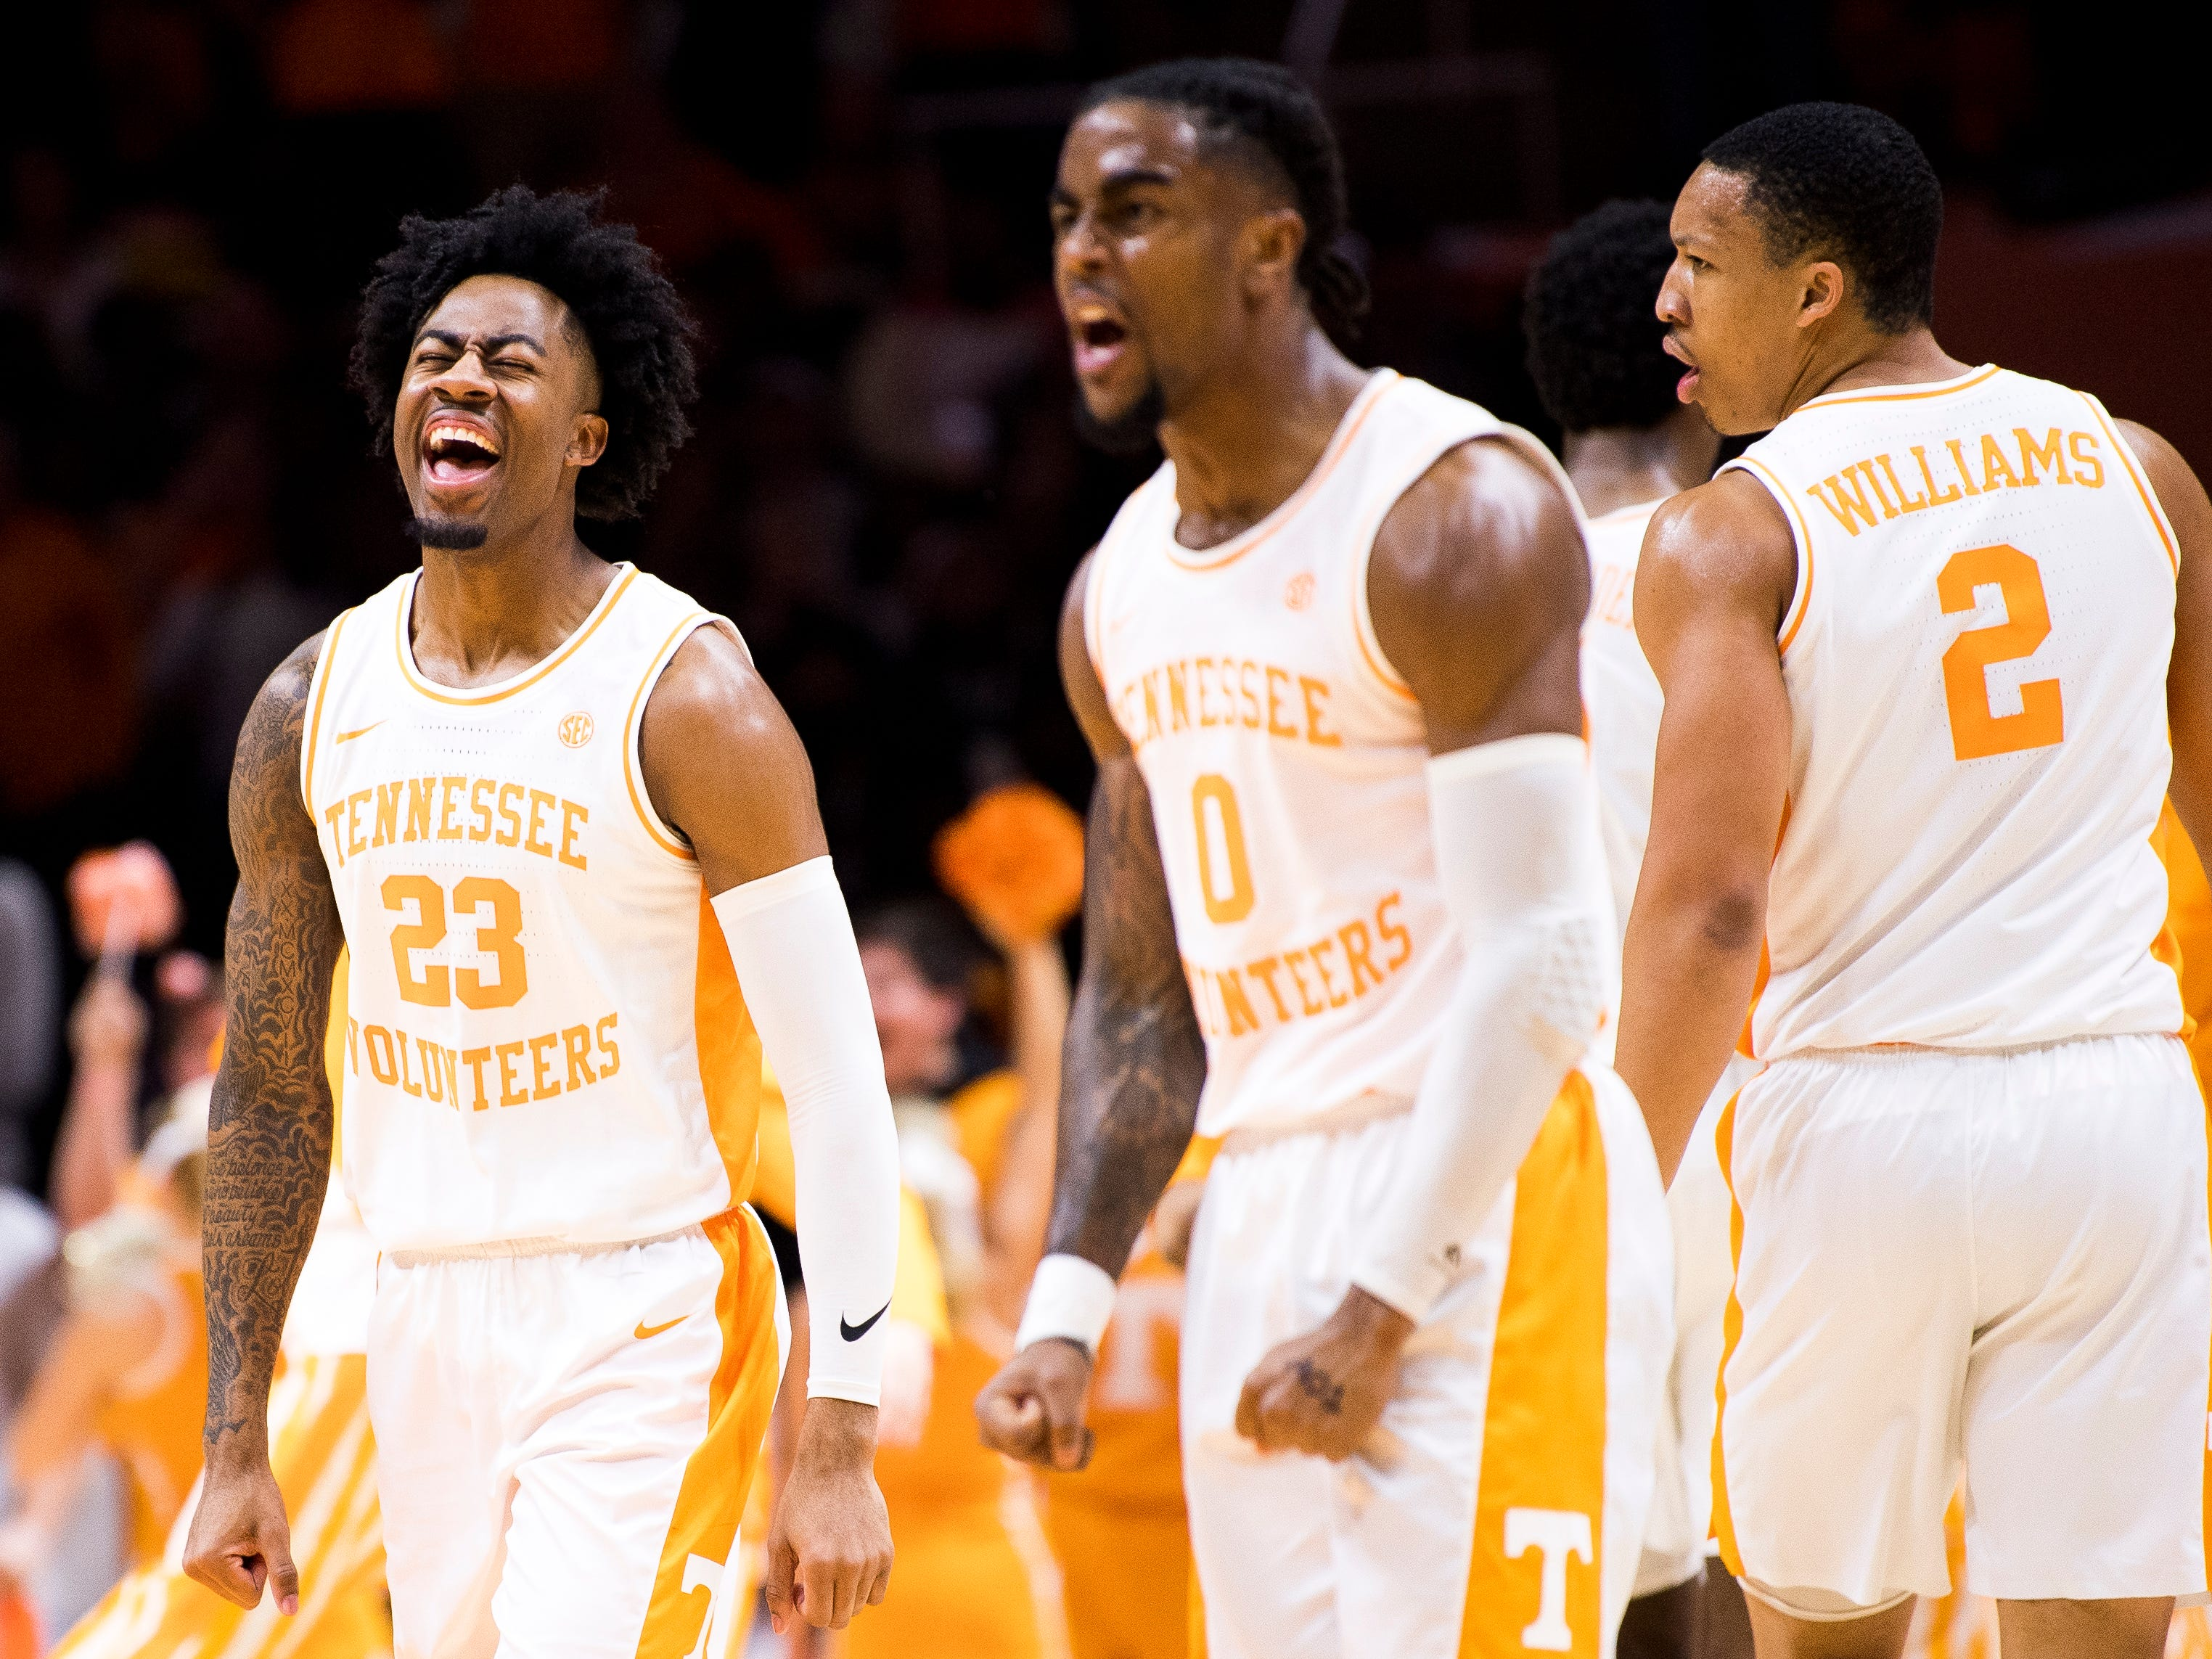 Tennessee guard Jordan Bowden (23) celebrates a Tennessee guard/forward Yves Pons (35) dunk during the first half of Tennessee's home SEC conference game against Alabama at Thompson-Boling Arena in Knoxville on Saturday, January 19, 2019.